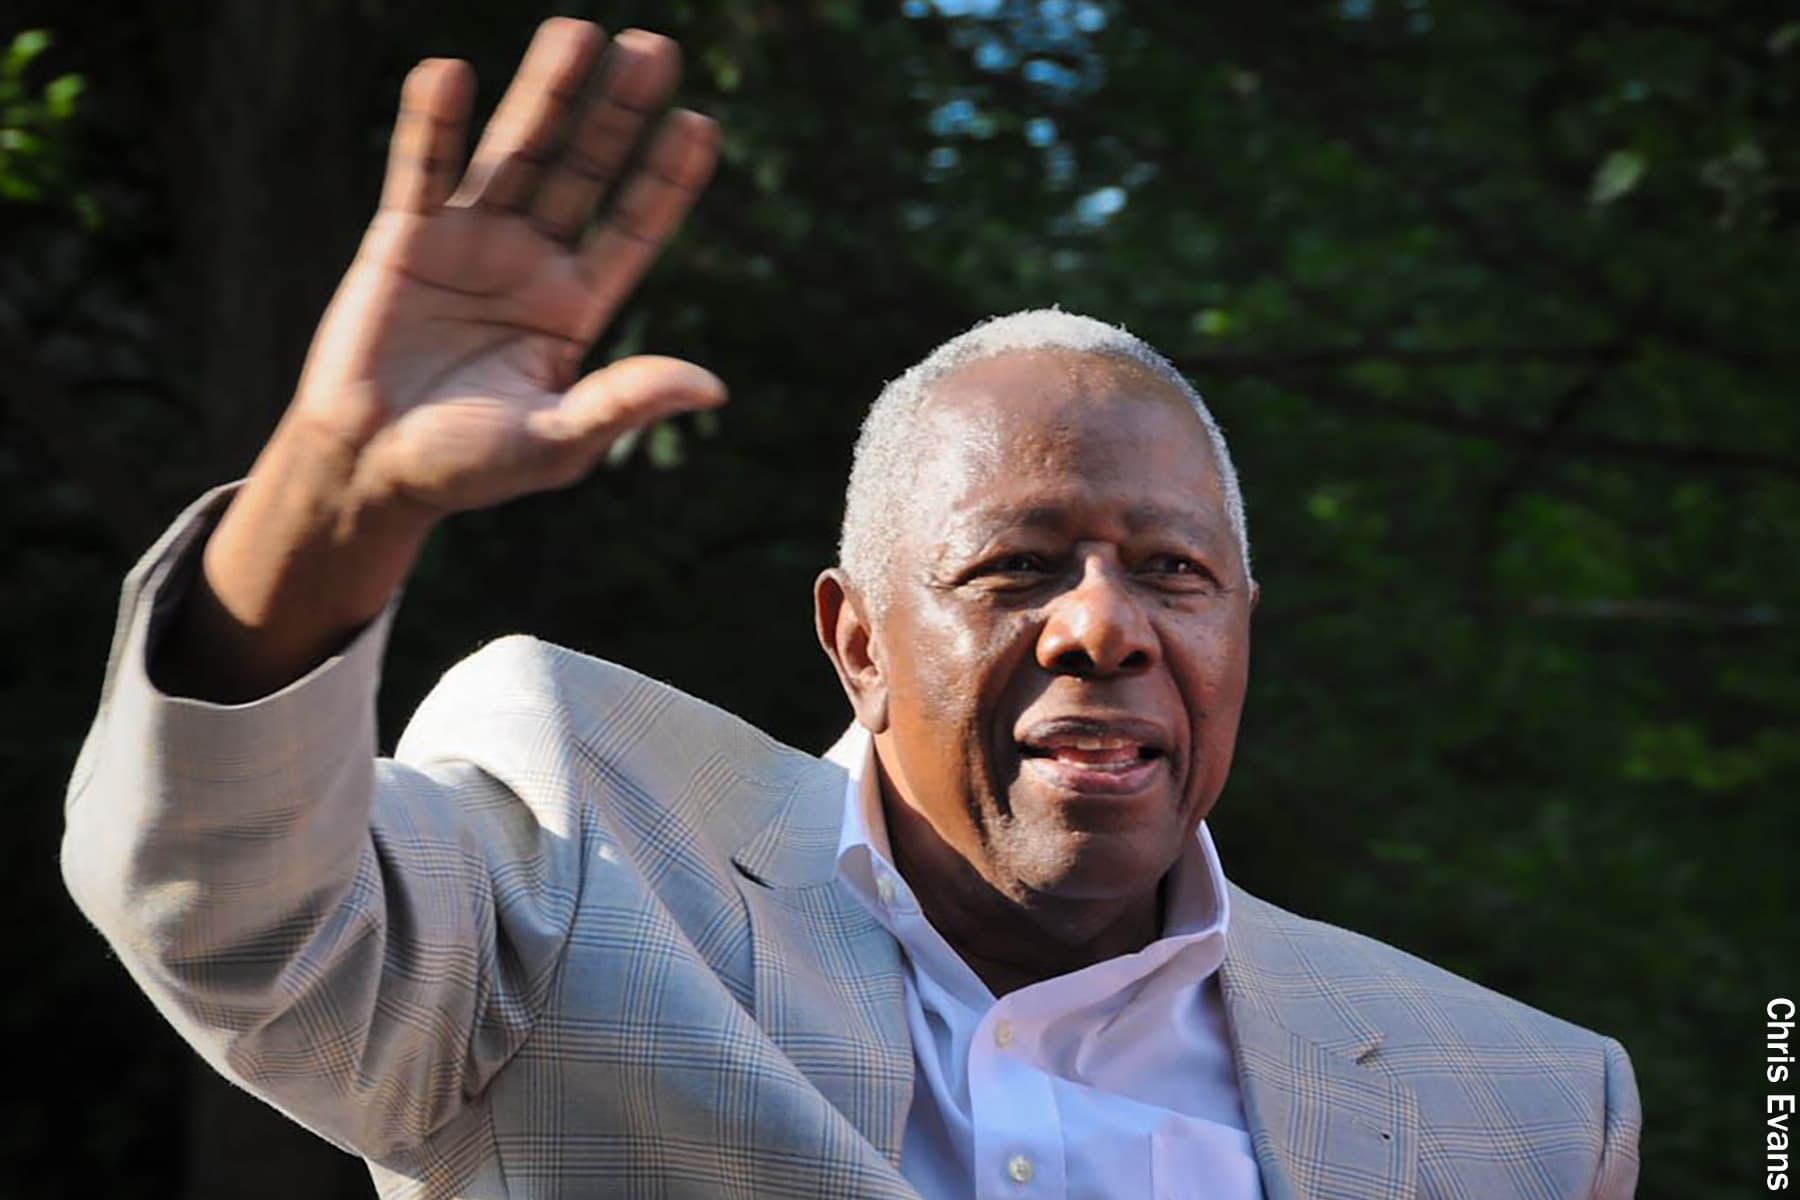 Tributes pour in for transcendent baseball icon Hank Aaron